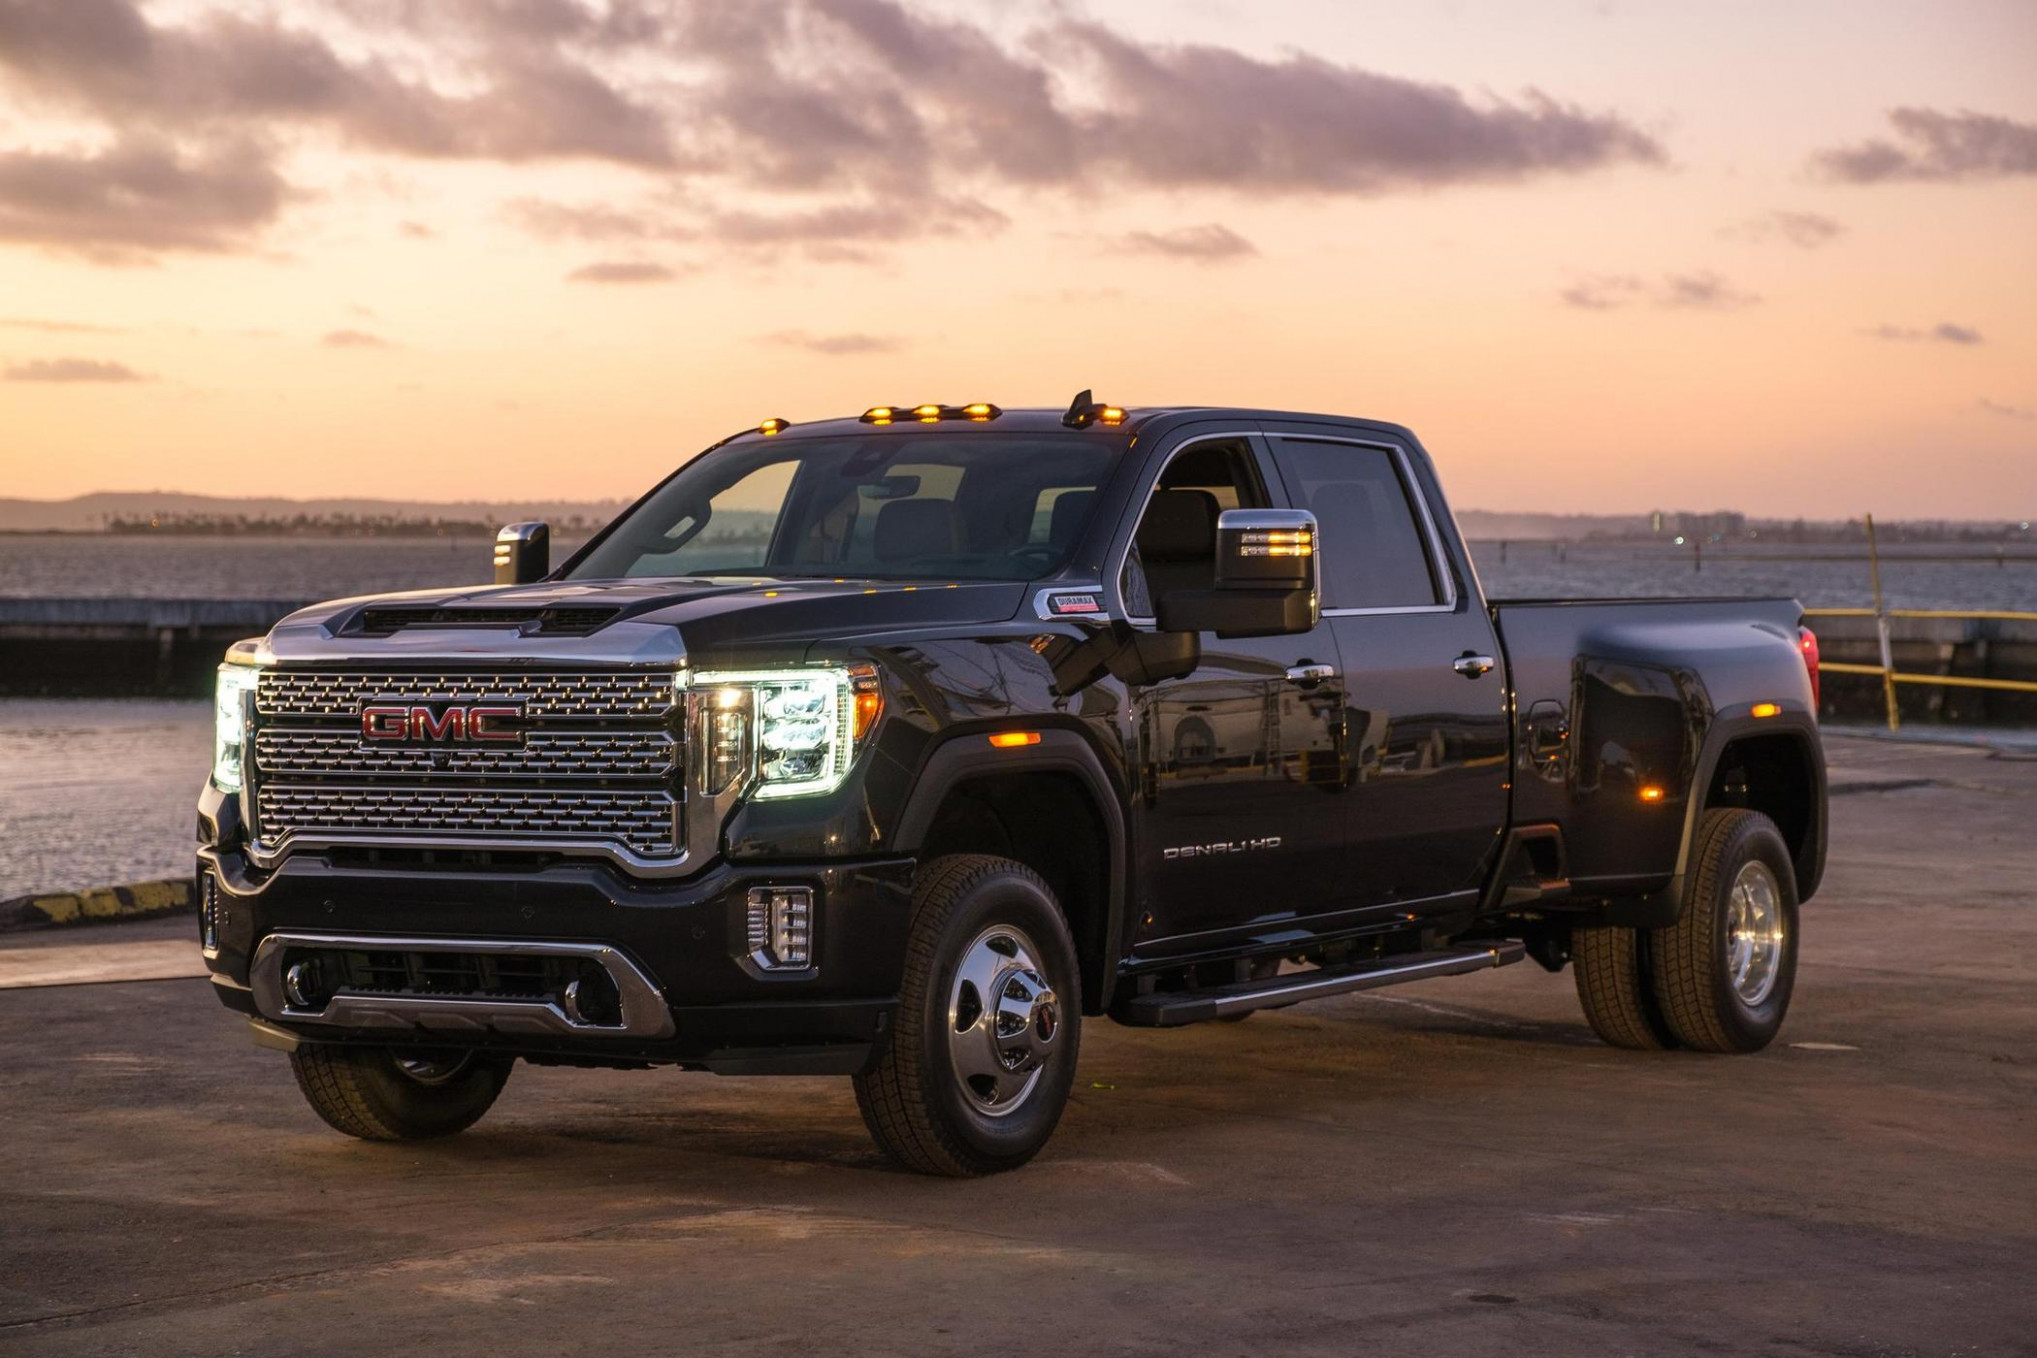 GM reveals 8 GMC Sierra Heavy Duty | Medium Duty Work Truck Info - gmc work truck 2020